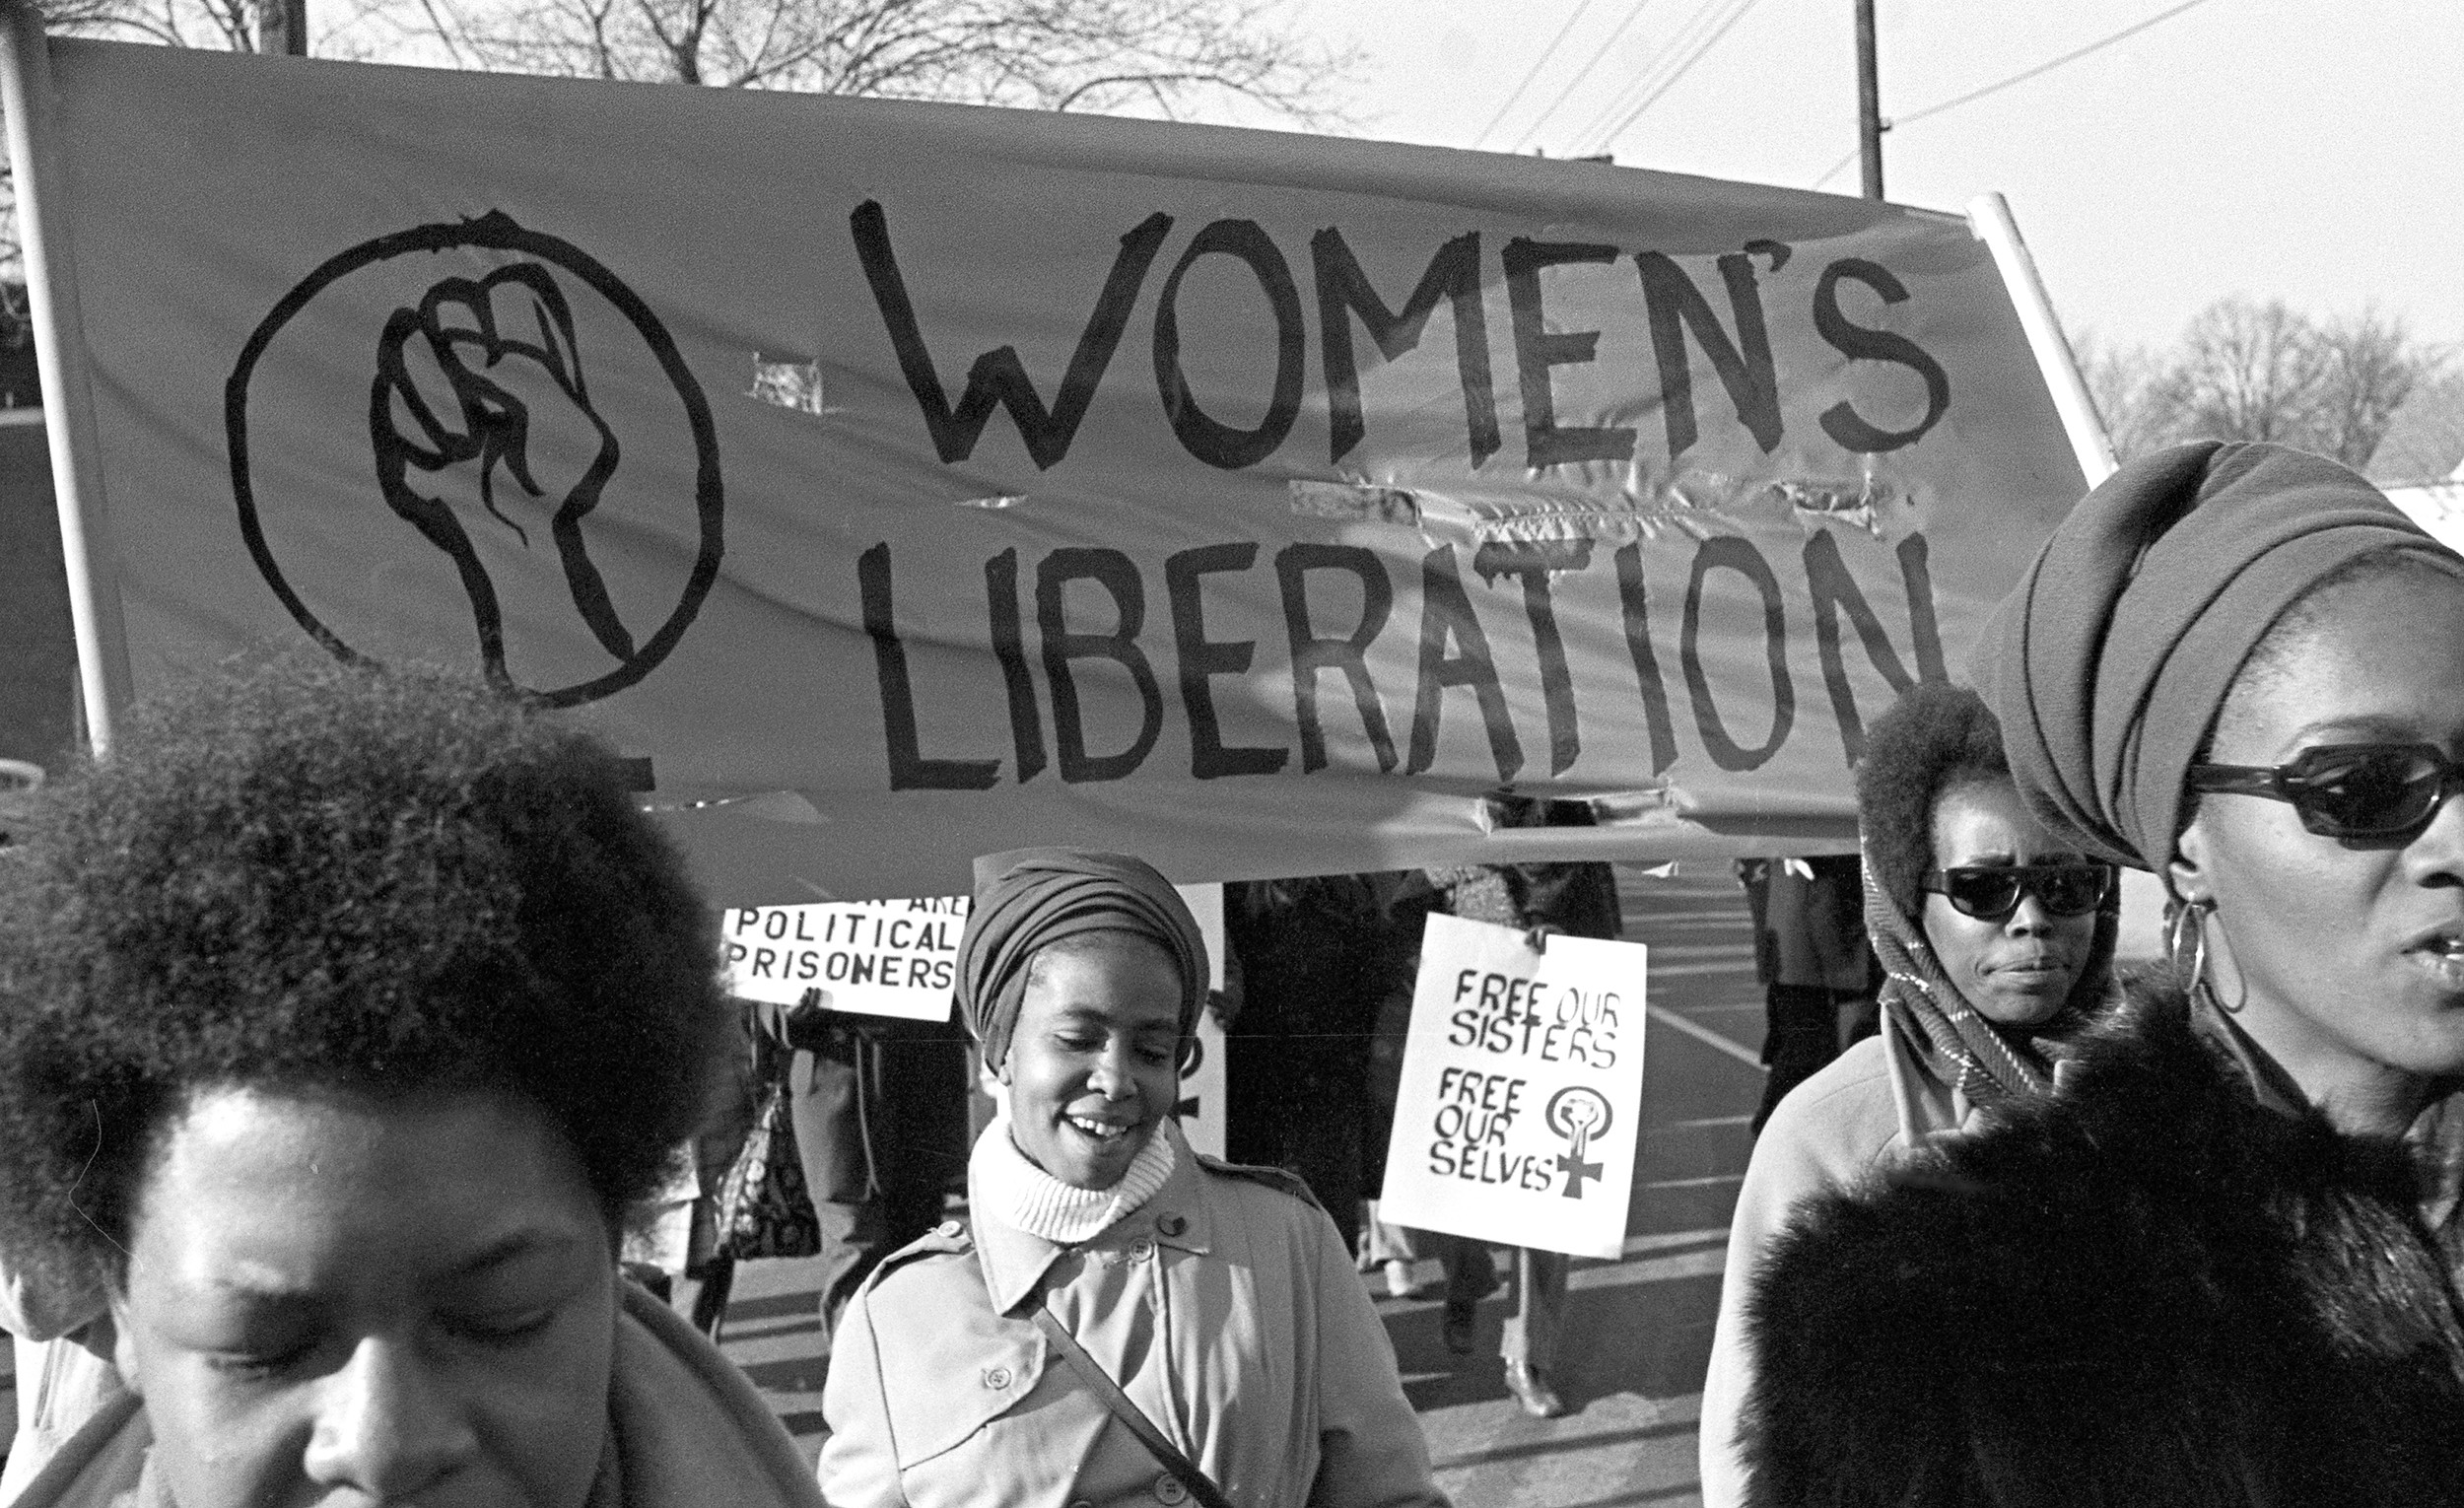 When feminism ignored the needs of black women a mighty force was born